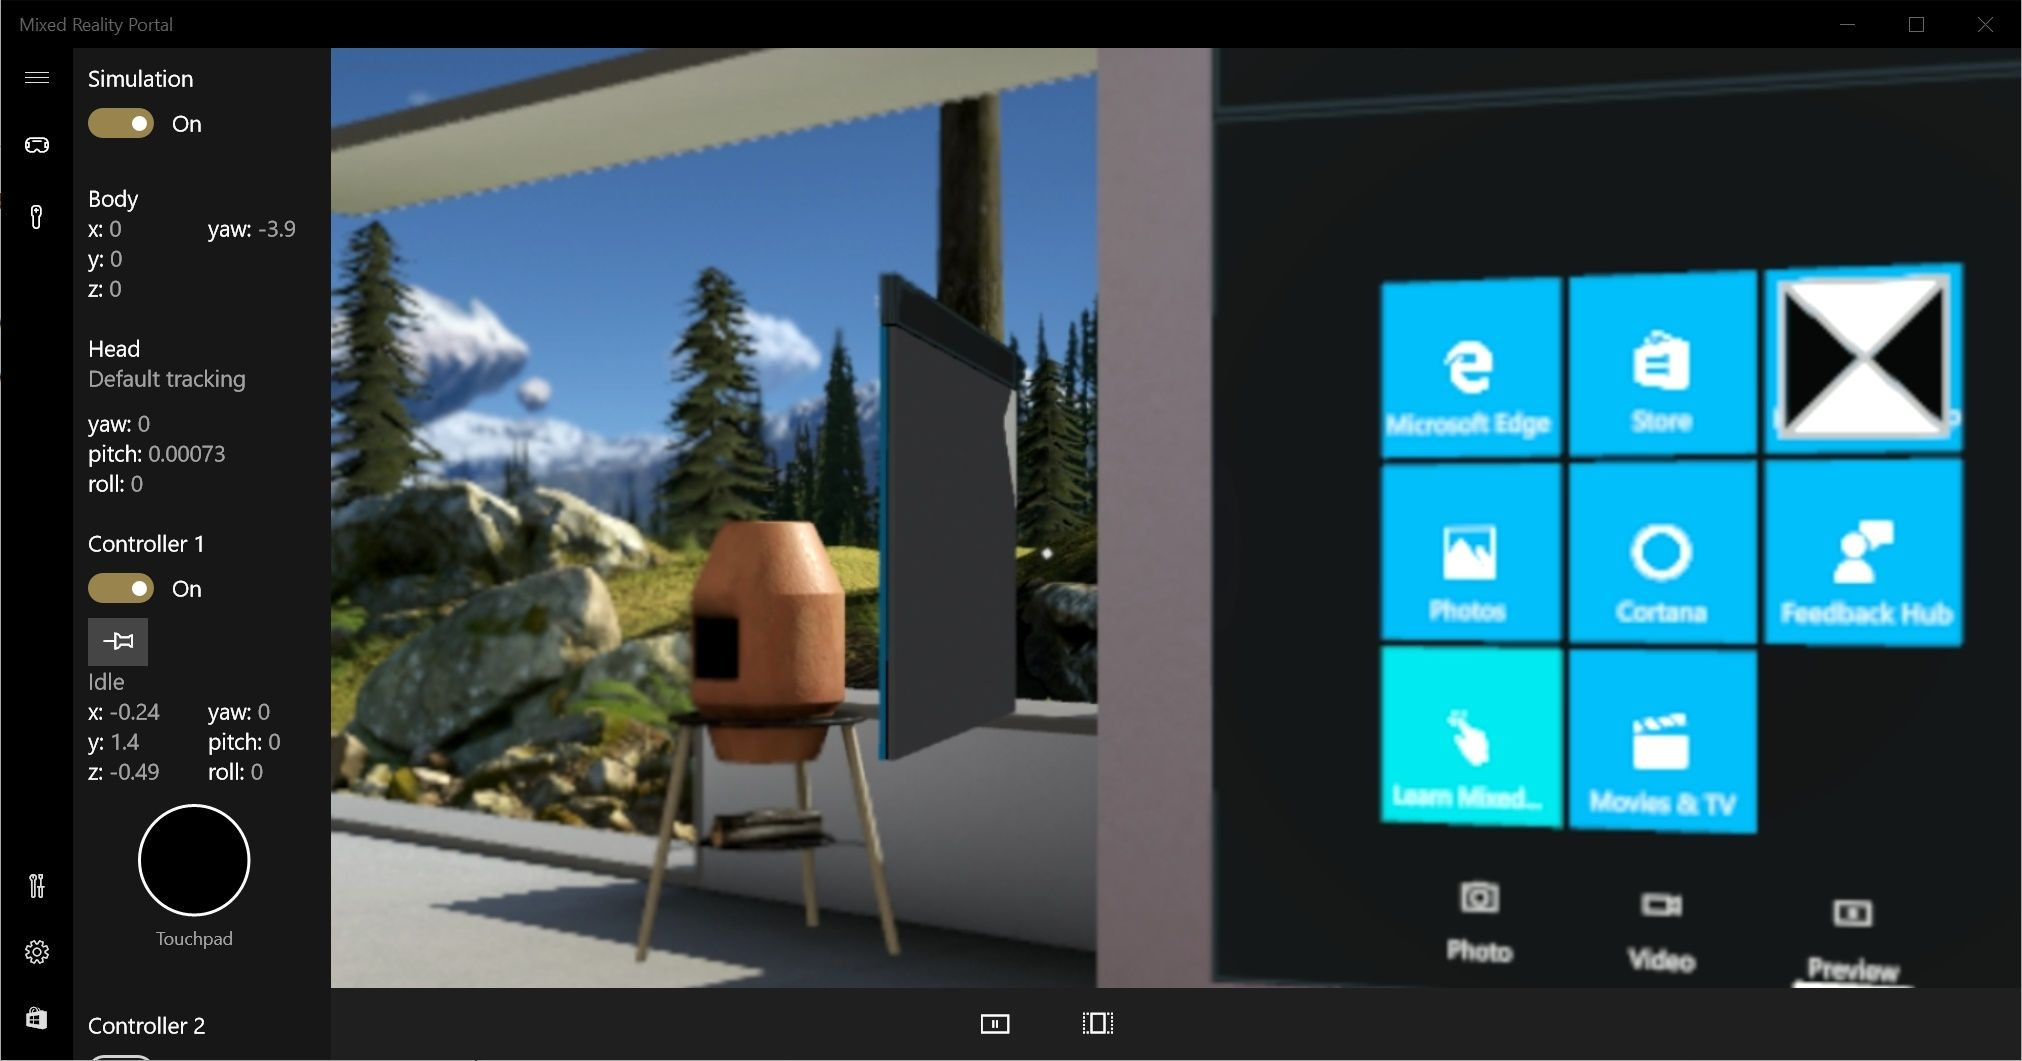 Latest Windows 10 preview build brings Mixed Reality to